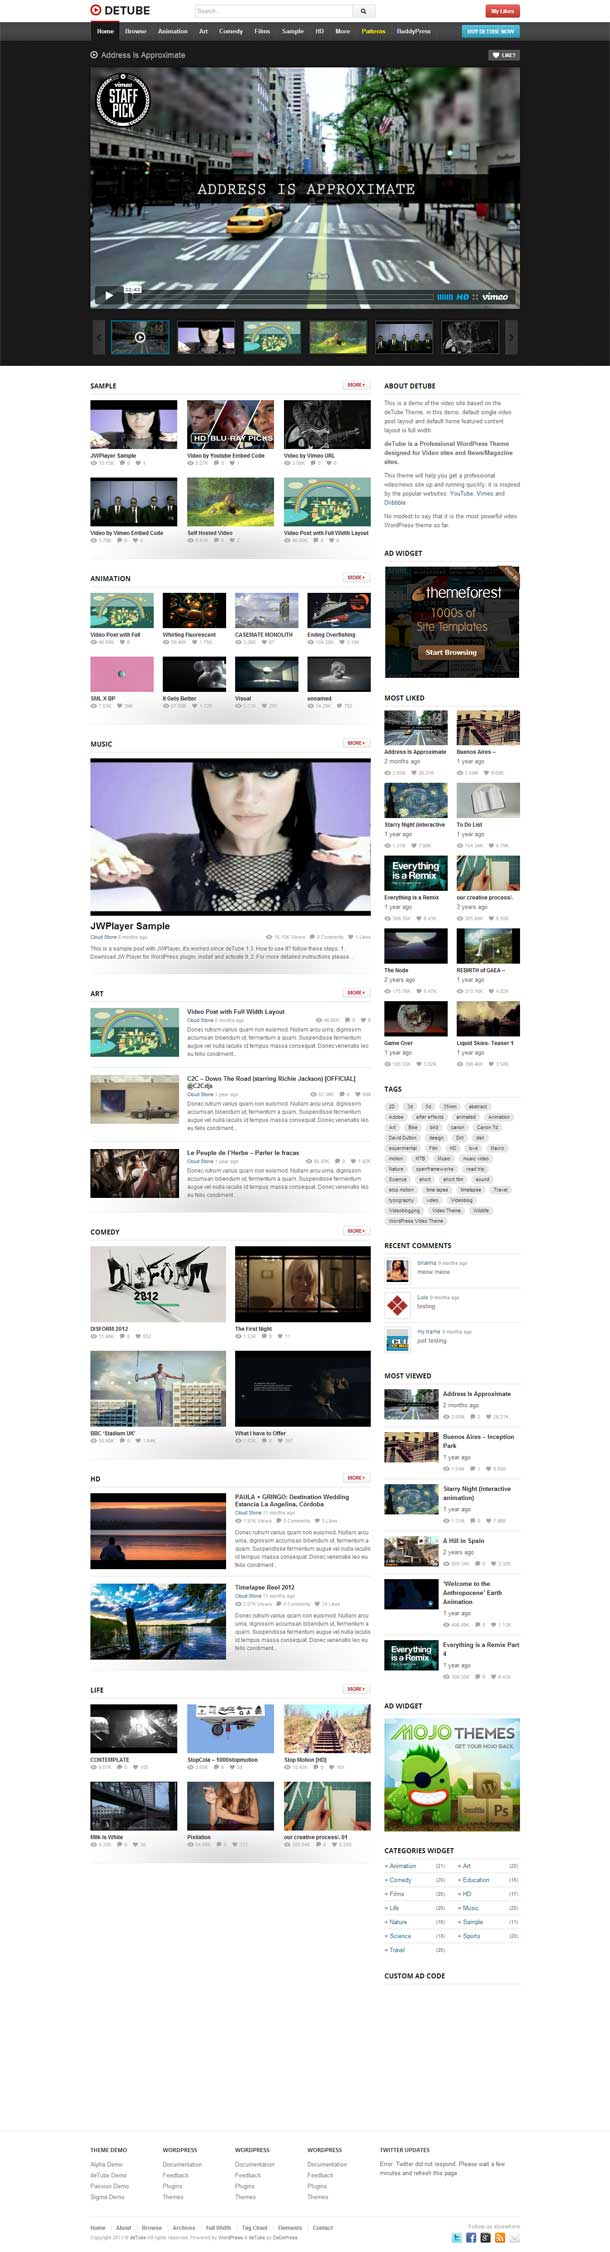 deTube Video Theme Image